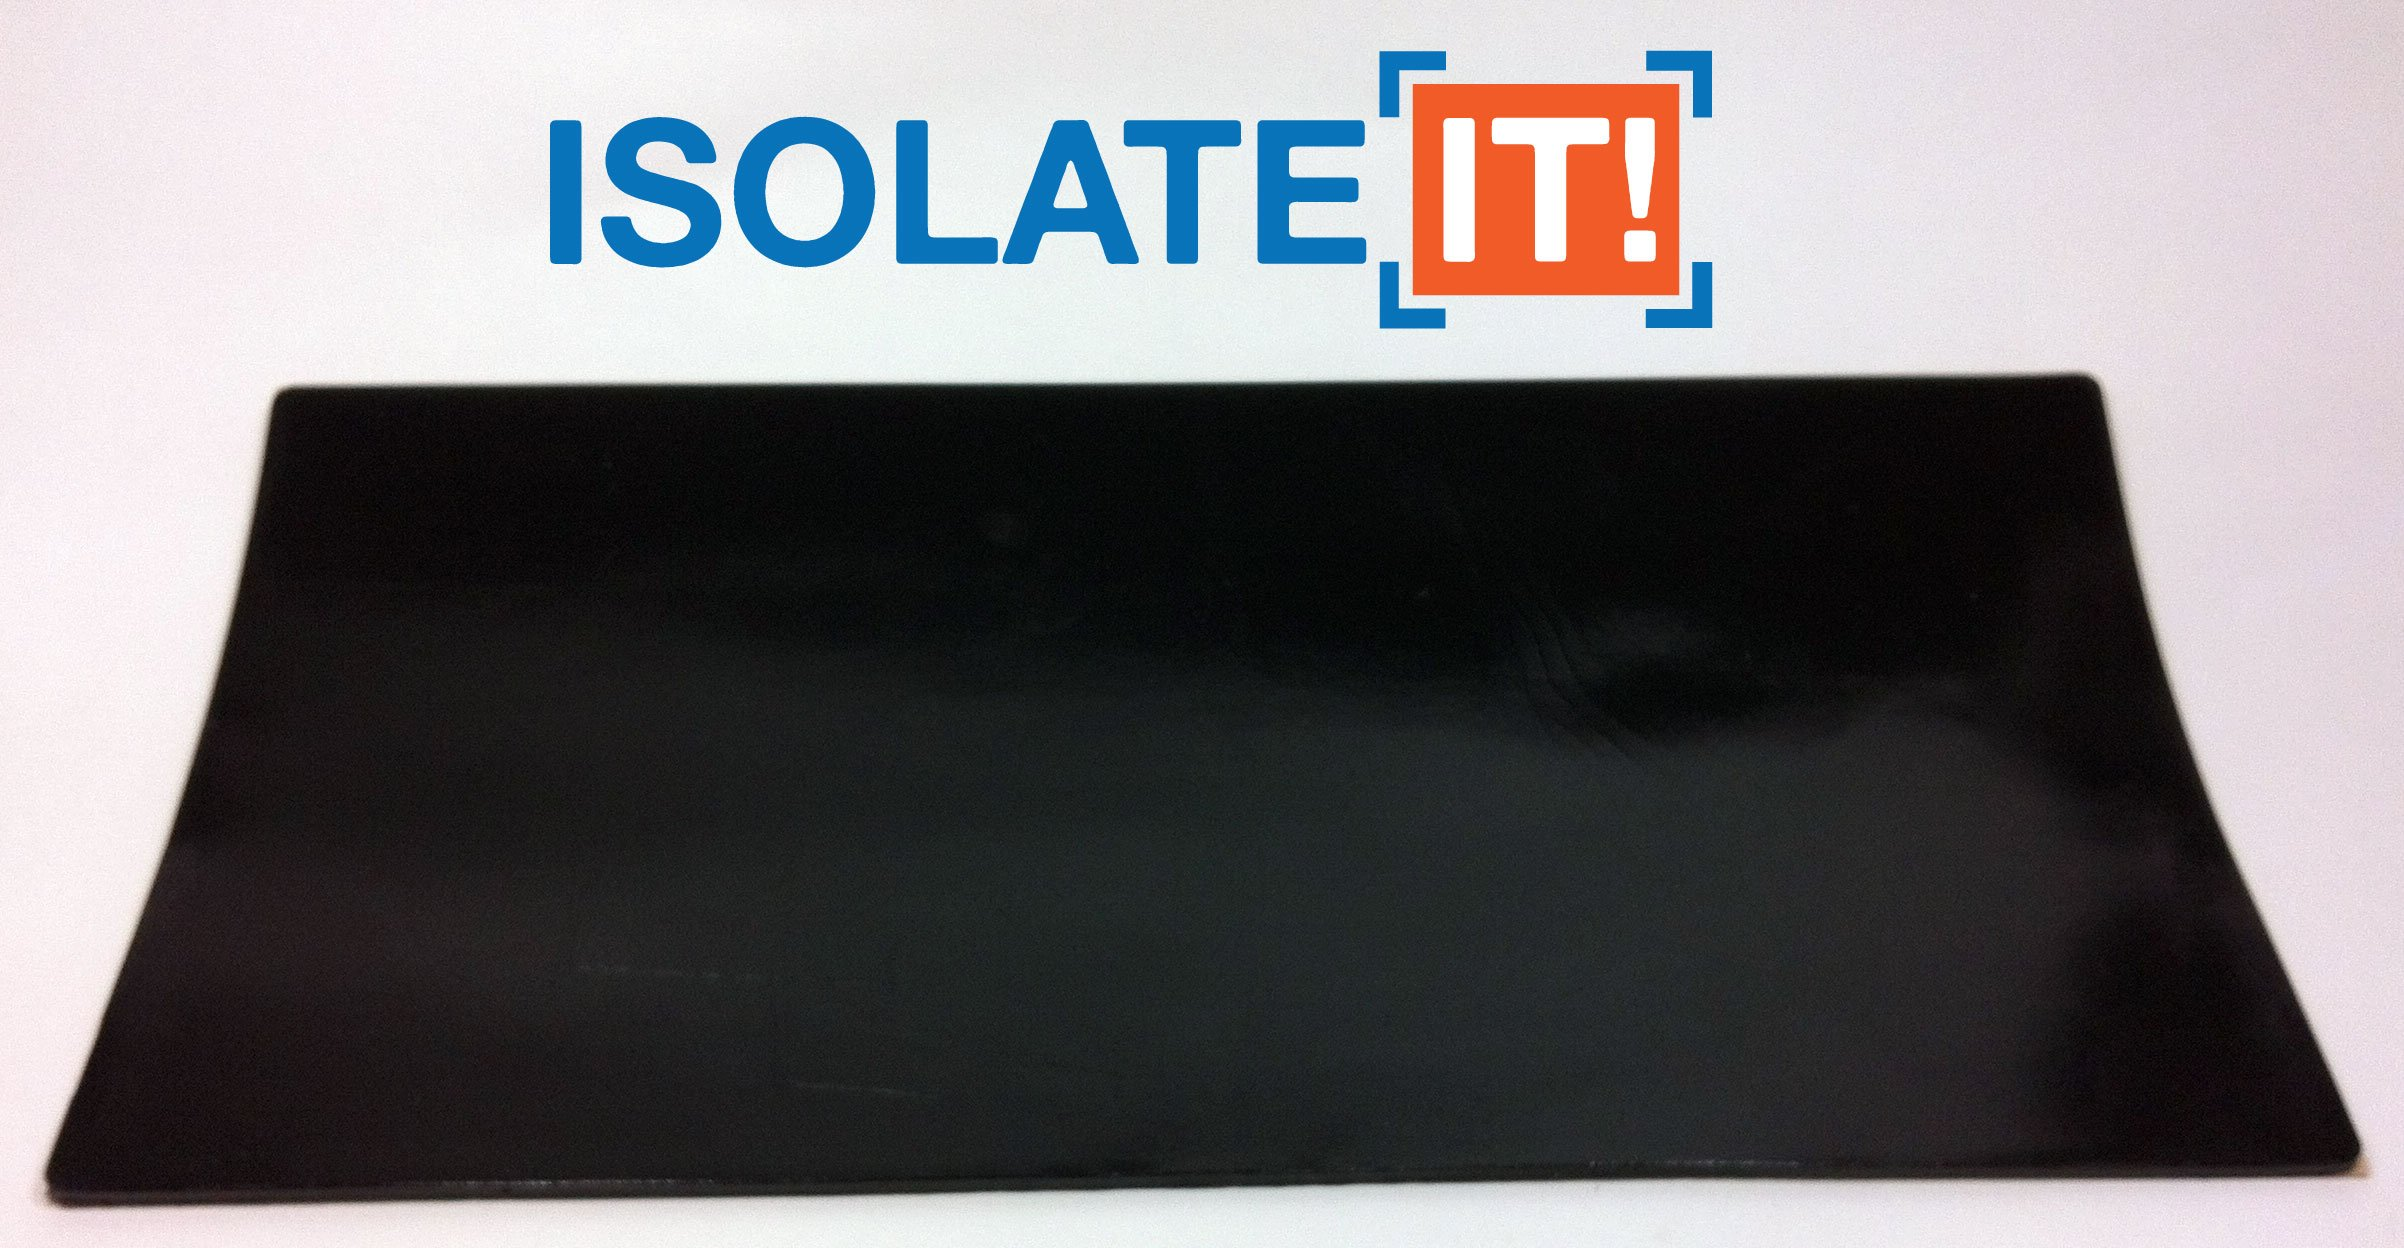 Isolate It!: Sorbothane Acoustic & Vibration Damping Film 60 Duro with 3M Adhesive Backing (0.25 x 6 x 12in) by Isolate It!